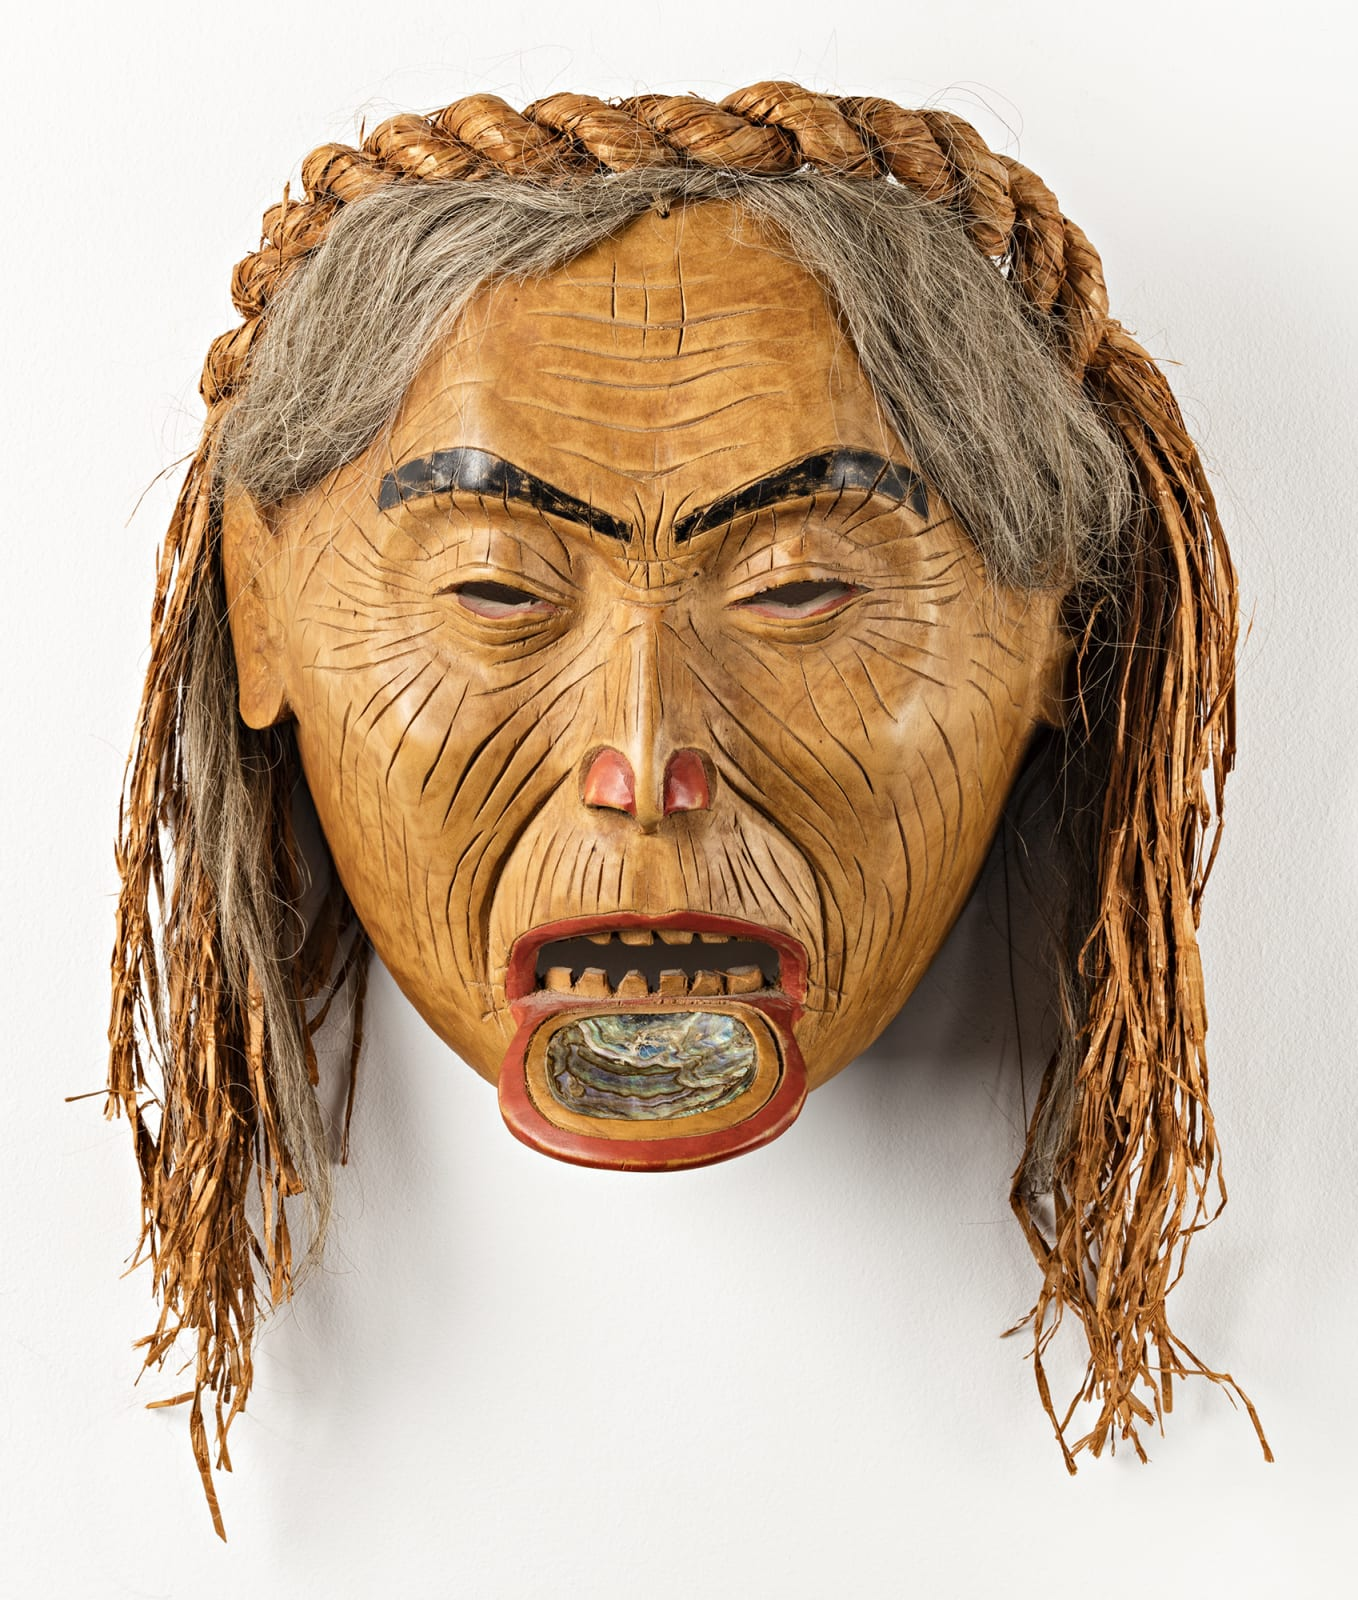 FREDA DIESING (1925-2002), HAIDA, PRINCE RUPERT, Old Woman with Labret, 1973